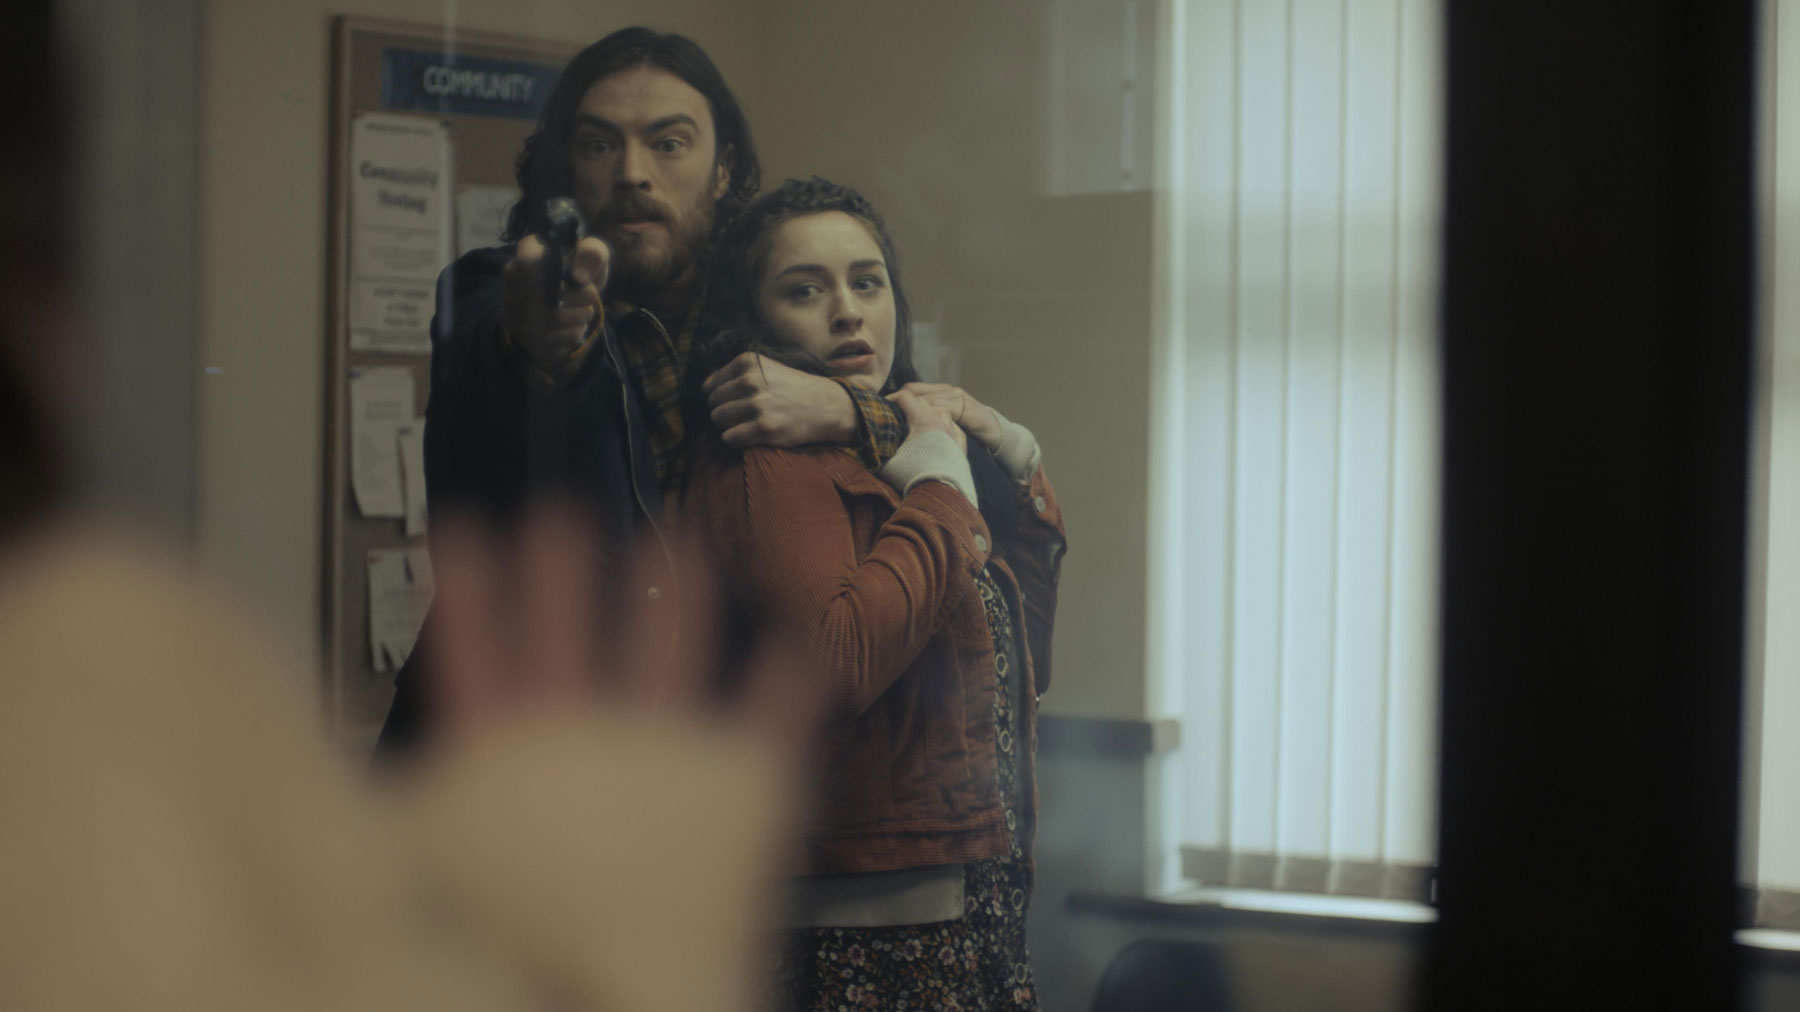 Break Us - Directed by Claire Mc Cabe